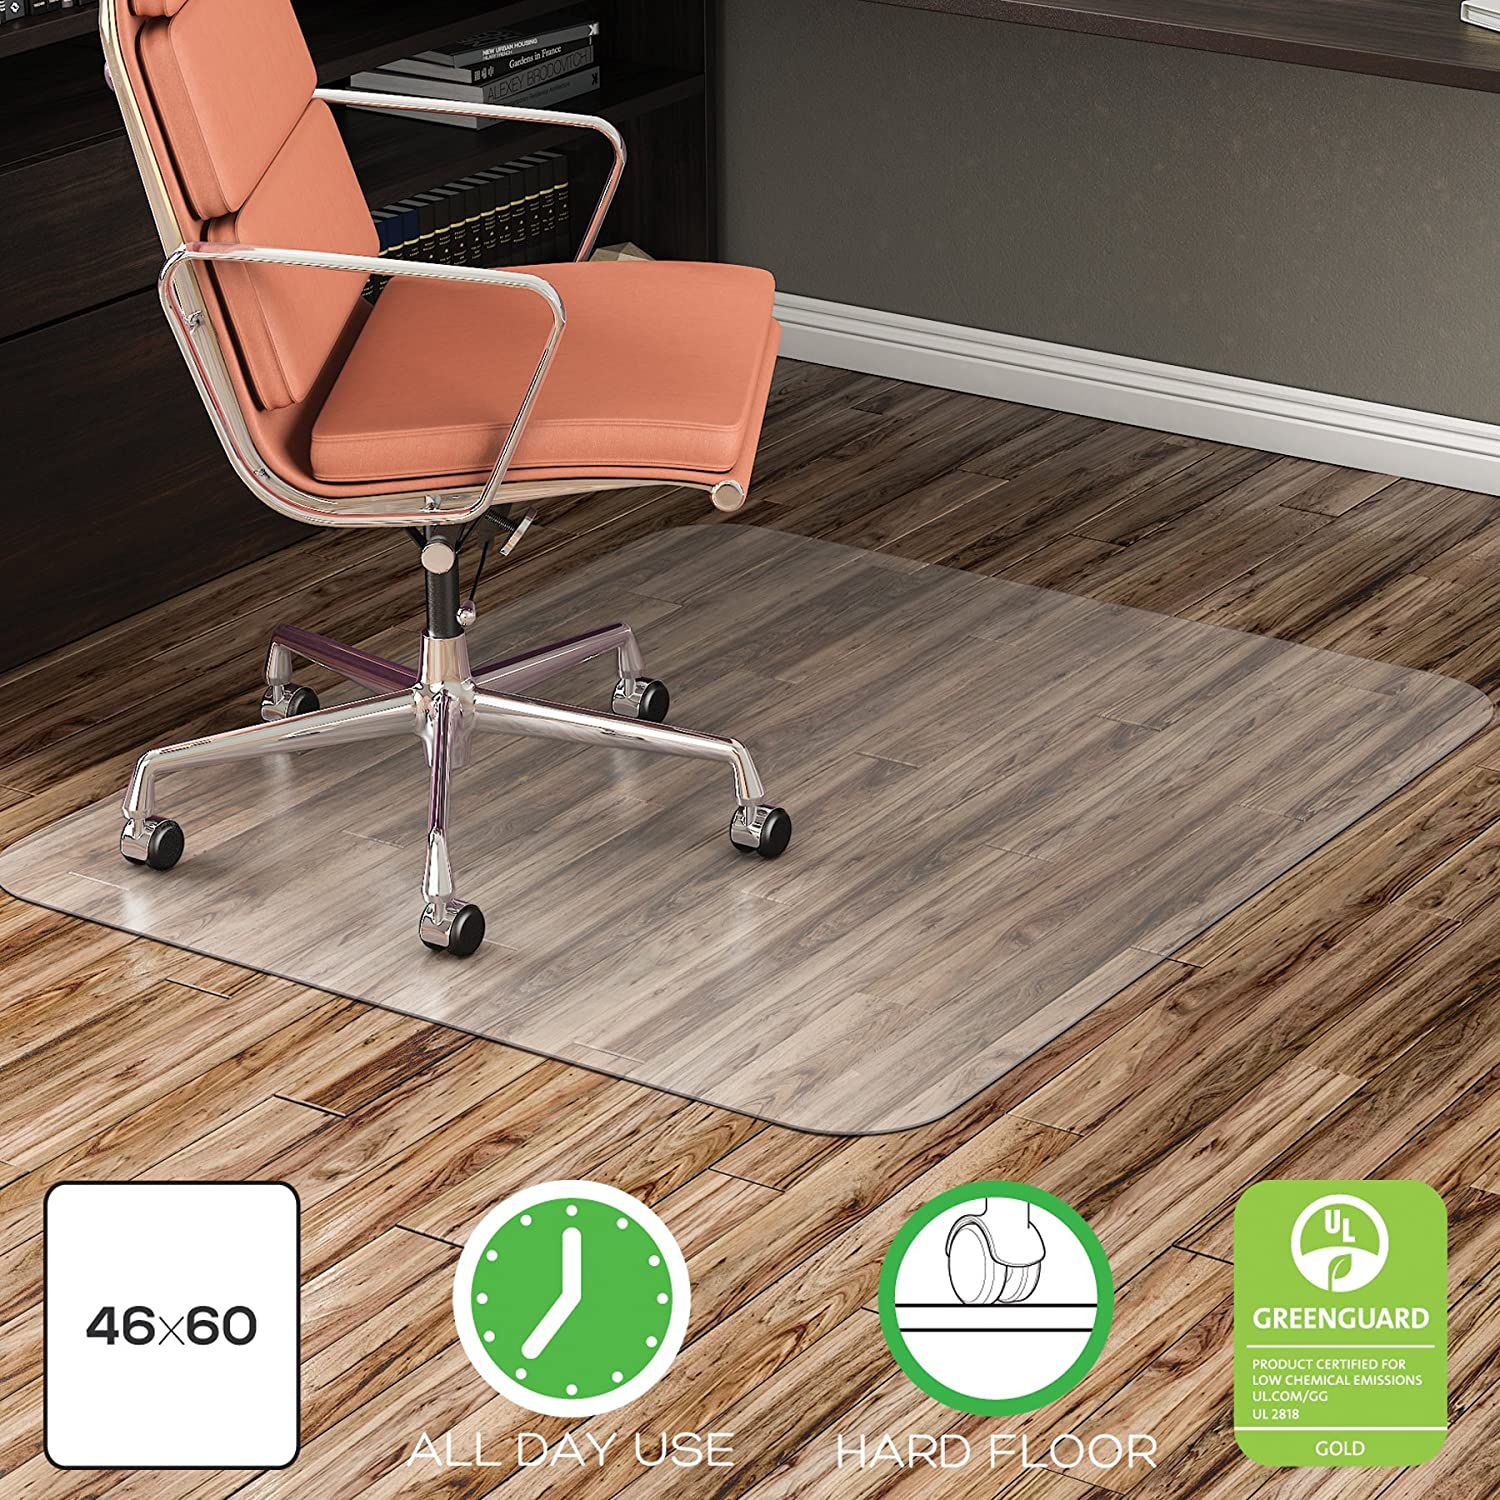 modern mat mats perfect full wood carpet on inspiration with home lip floors transparent size chair protector floor office carpeted for of green best circular desk etm